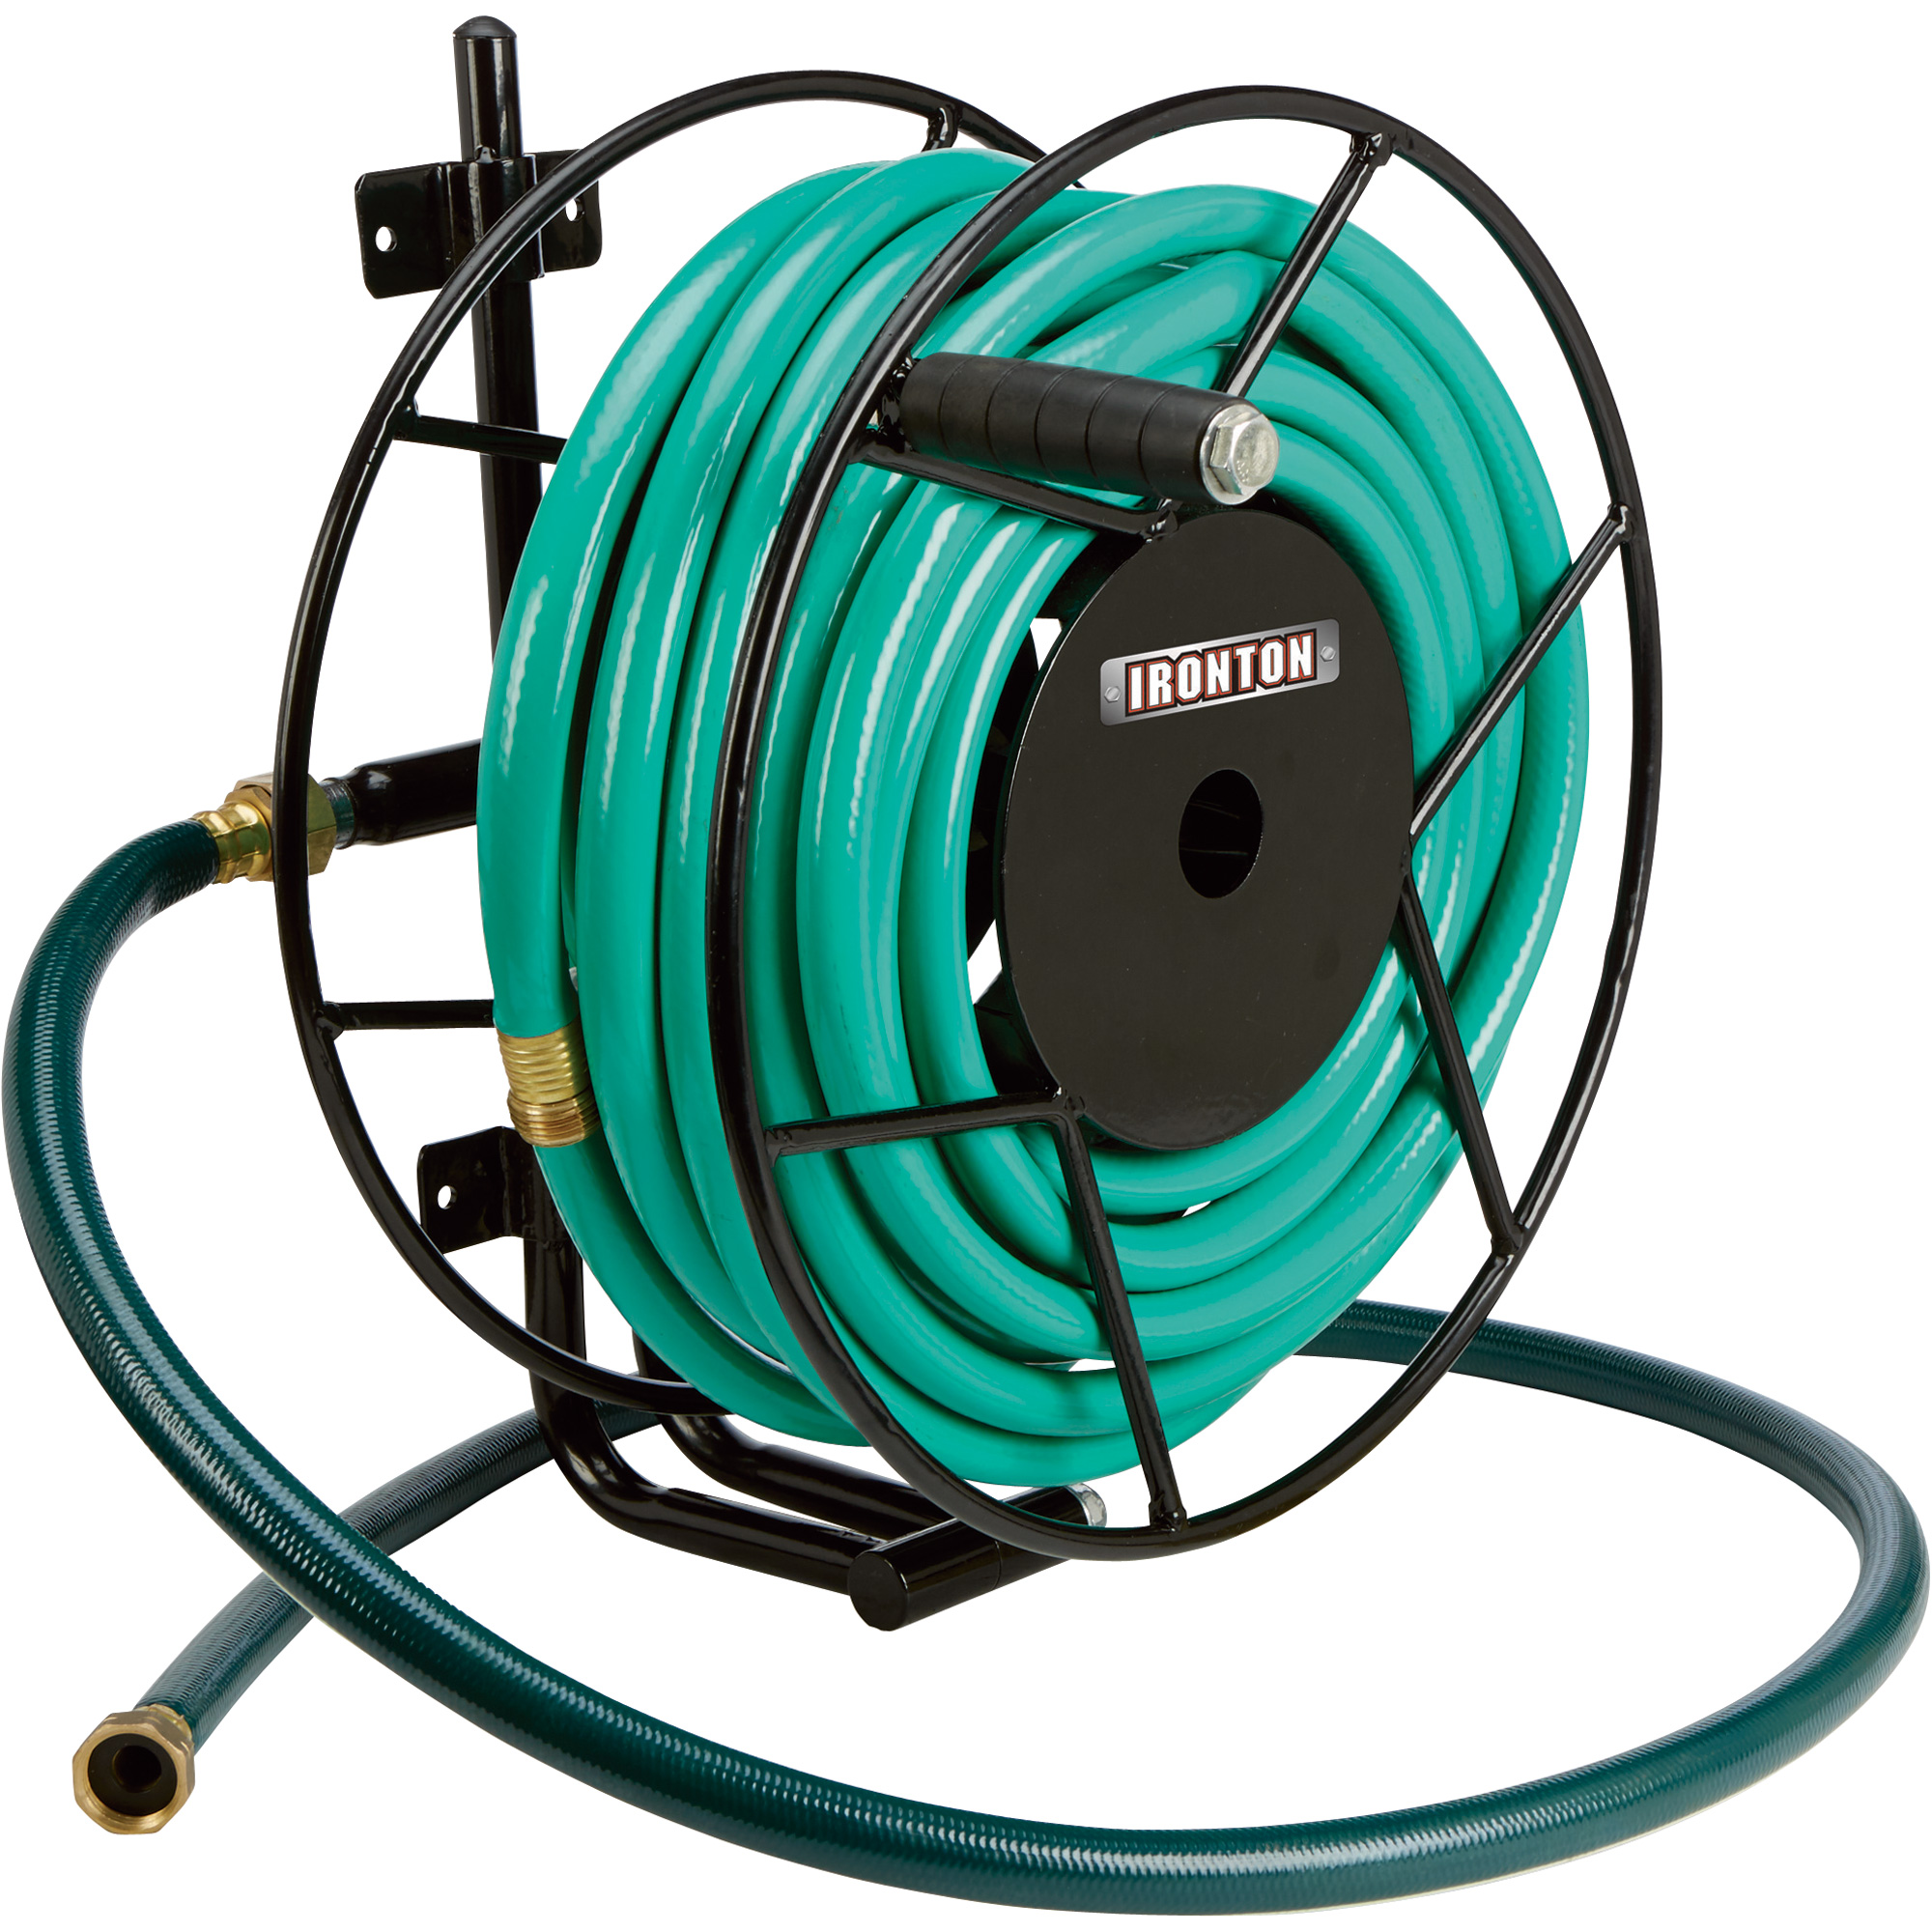 Ironton Wall Mount Garden Hose Reel Holds 100ft x 58in Hose